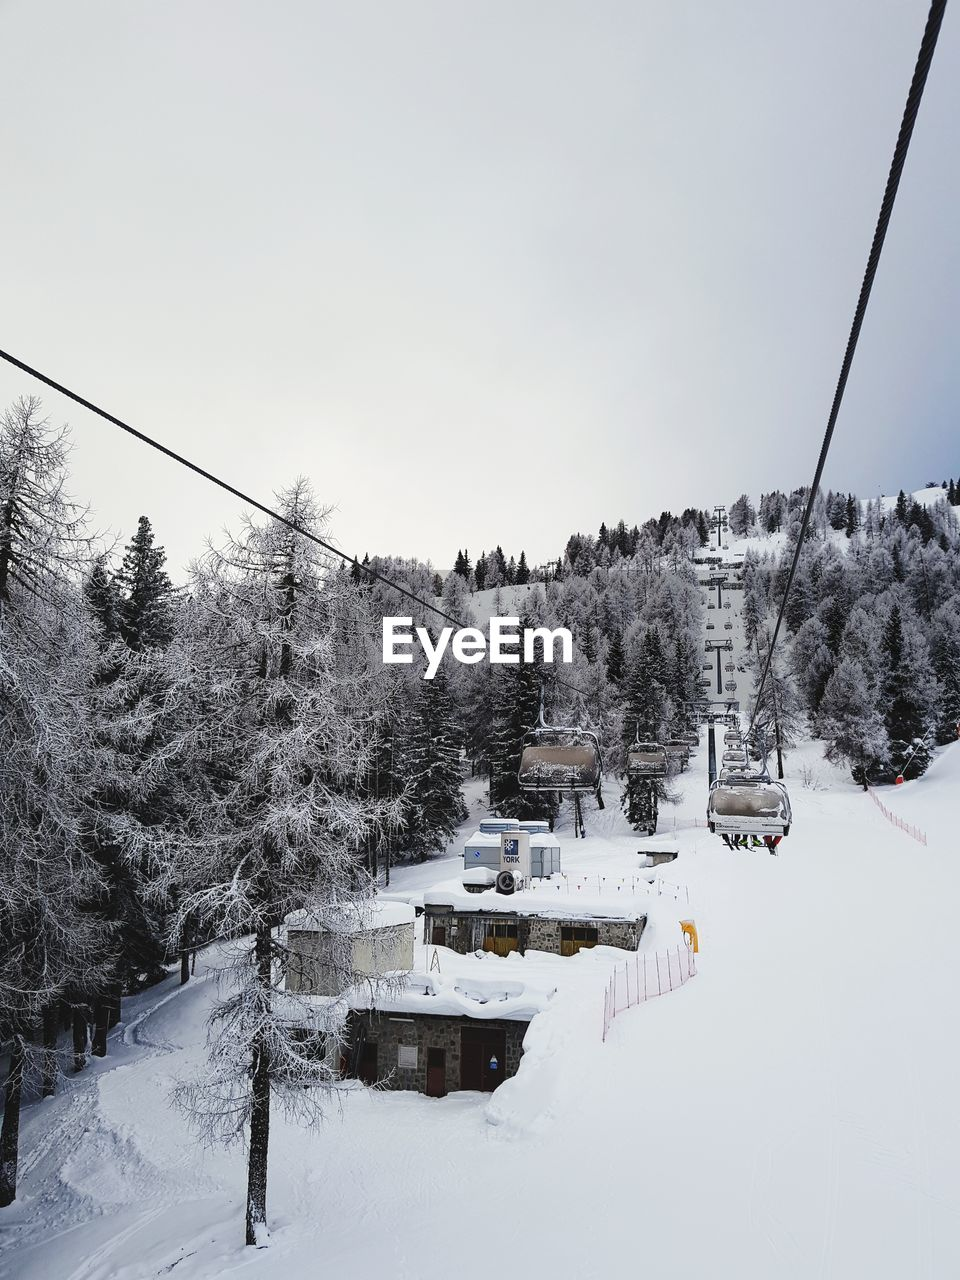 snow, cold temperature, winter, tree, sky, plant, cable, nature, covering, day, beauty in nature, cable car, no people, architecture, ski lift, transportation, scenics - nature, tranquility, mountain, outdoors, electricity